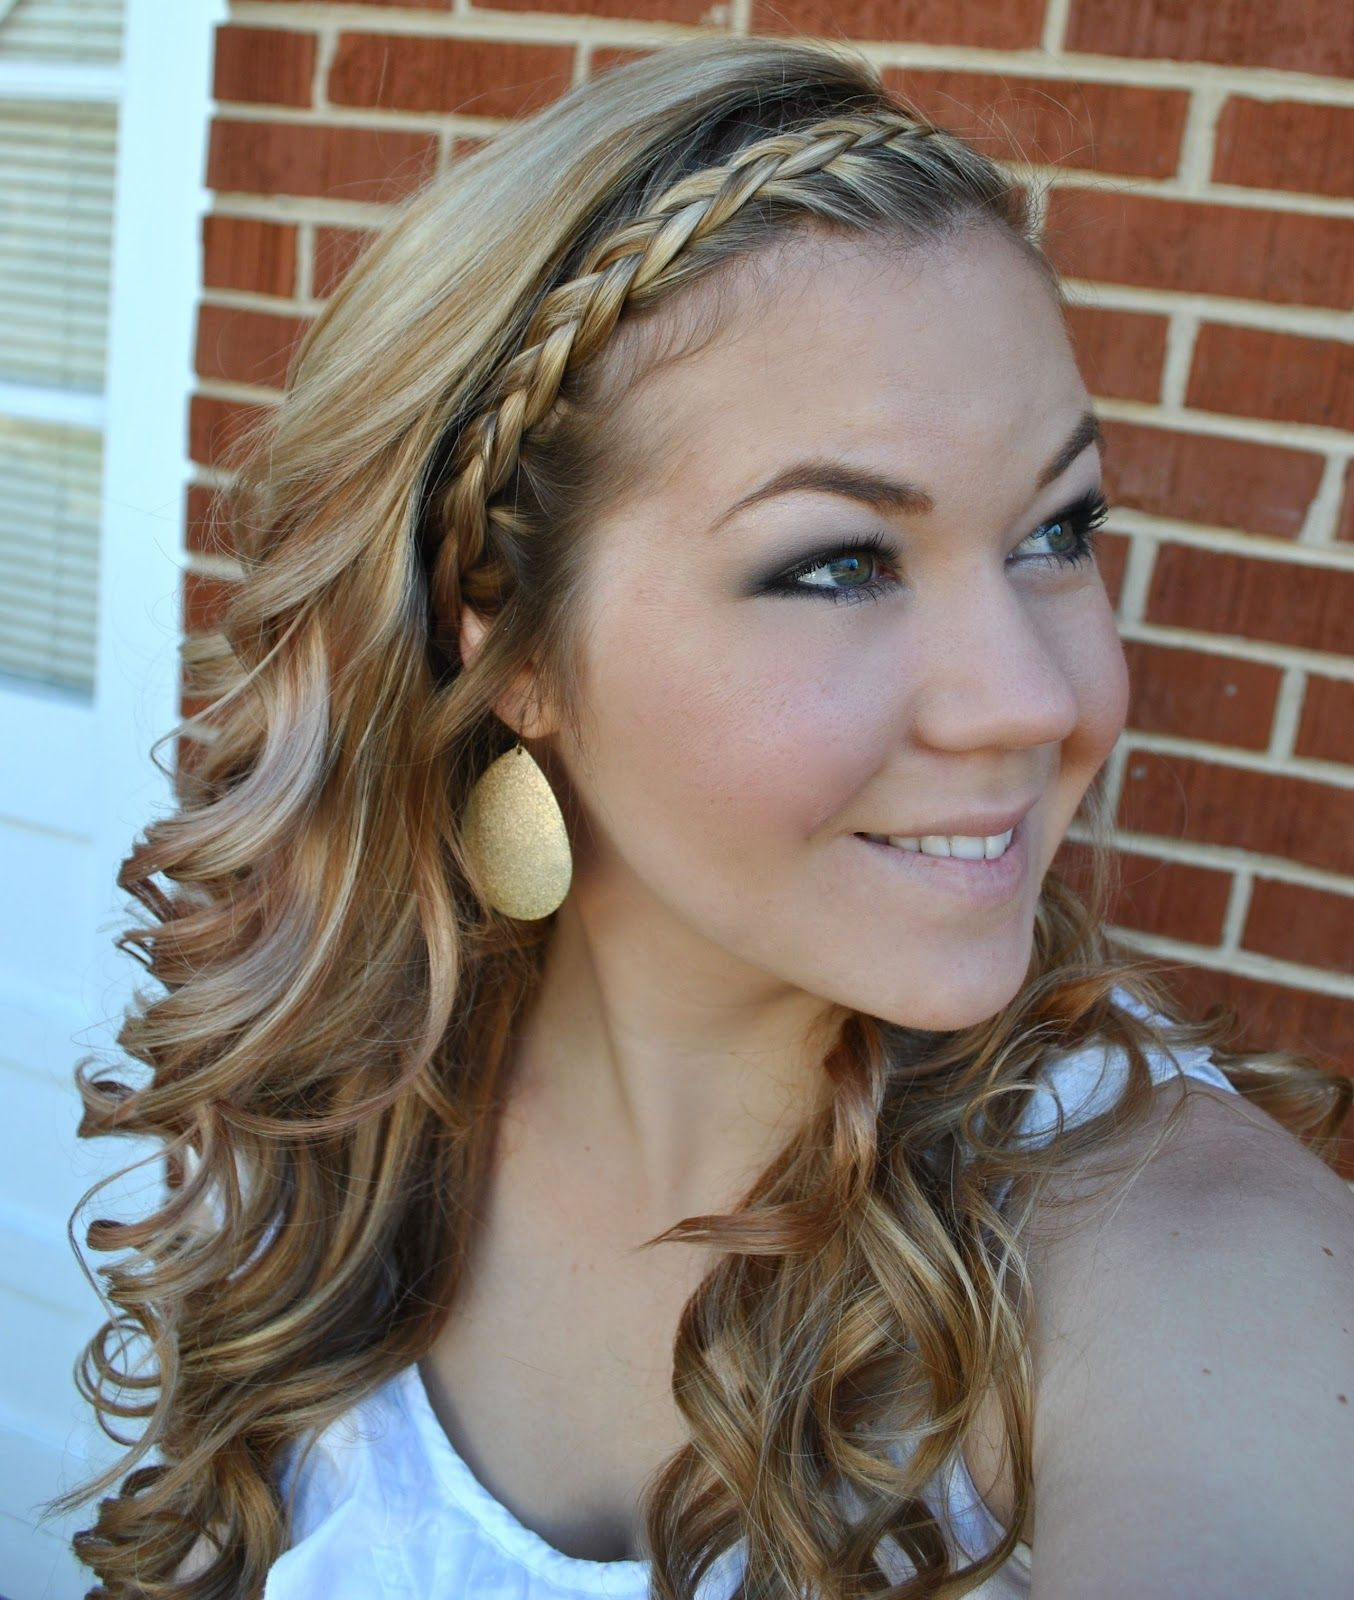 alexsis mae : valenties hair- lauren conrad style | mommy and